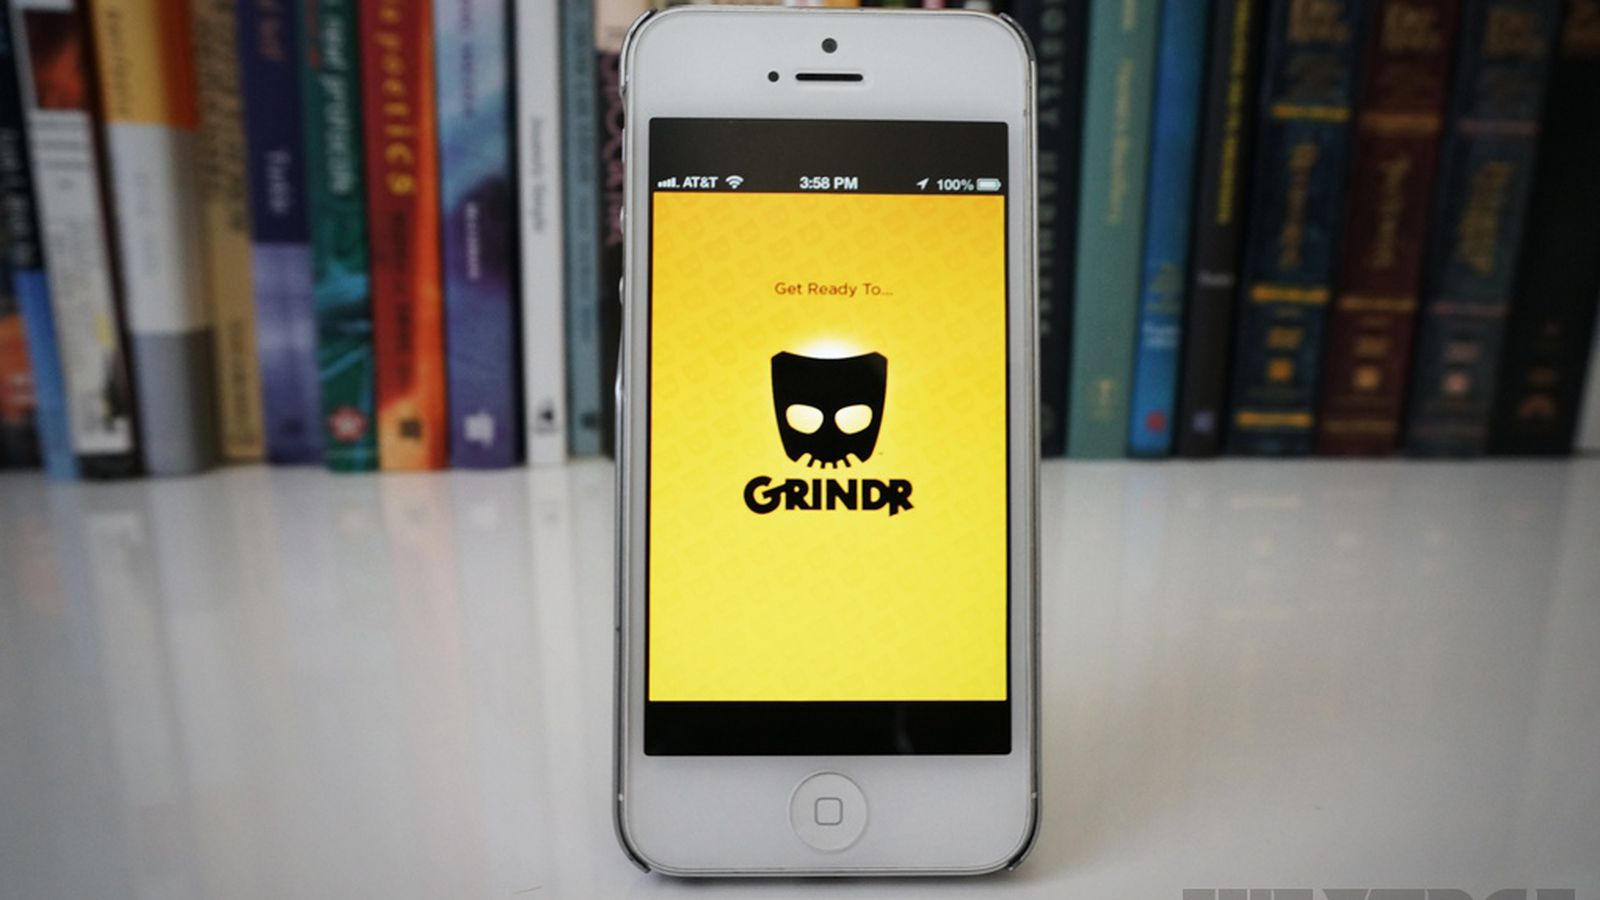 Grindr For Windows Phone 8 1 - Overrun by spambots gay dating app grindr to end anonymous signups the verge